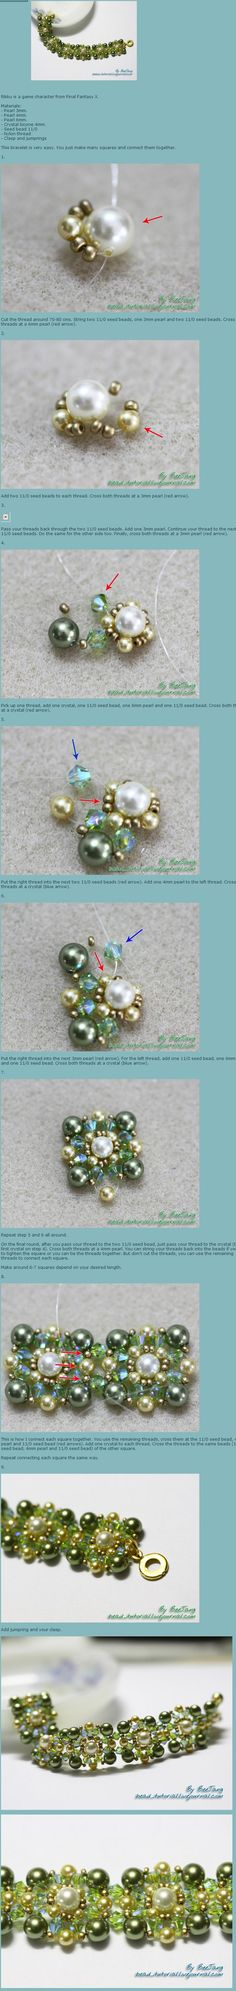 Fabulous free photo tutorial for bead sections that join together to make a bracelet. Uses 3mm, 4mm and 6mm pearls, 4mm crystals and 11/0 seed beads.